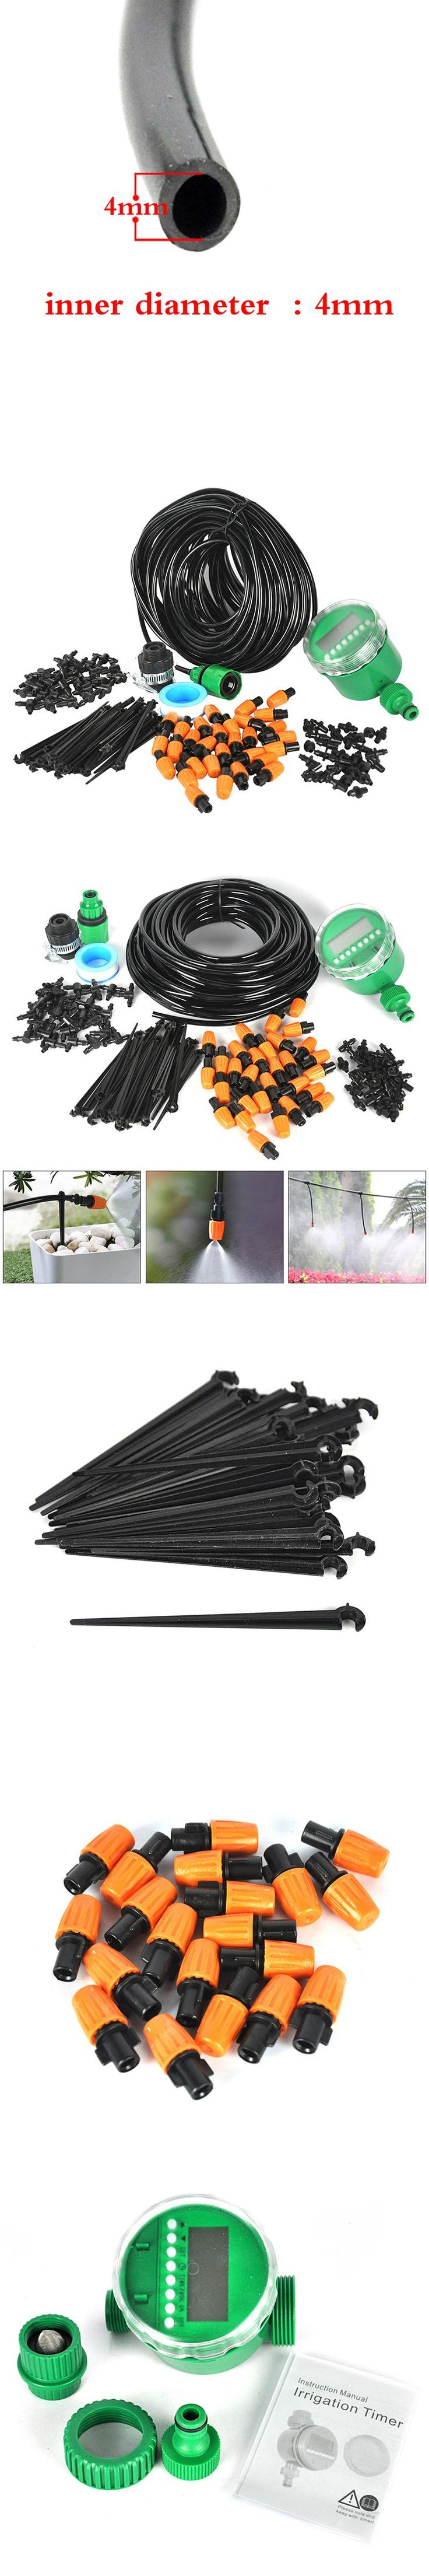 25M Automatic Micro Drip Irrigation System With Water Timer Plant Watering Garden Hose Kits Adjustable Dripper Controller Suits